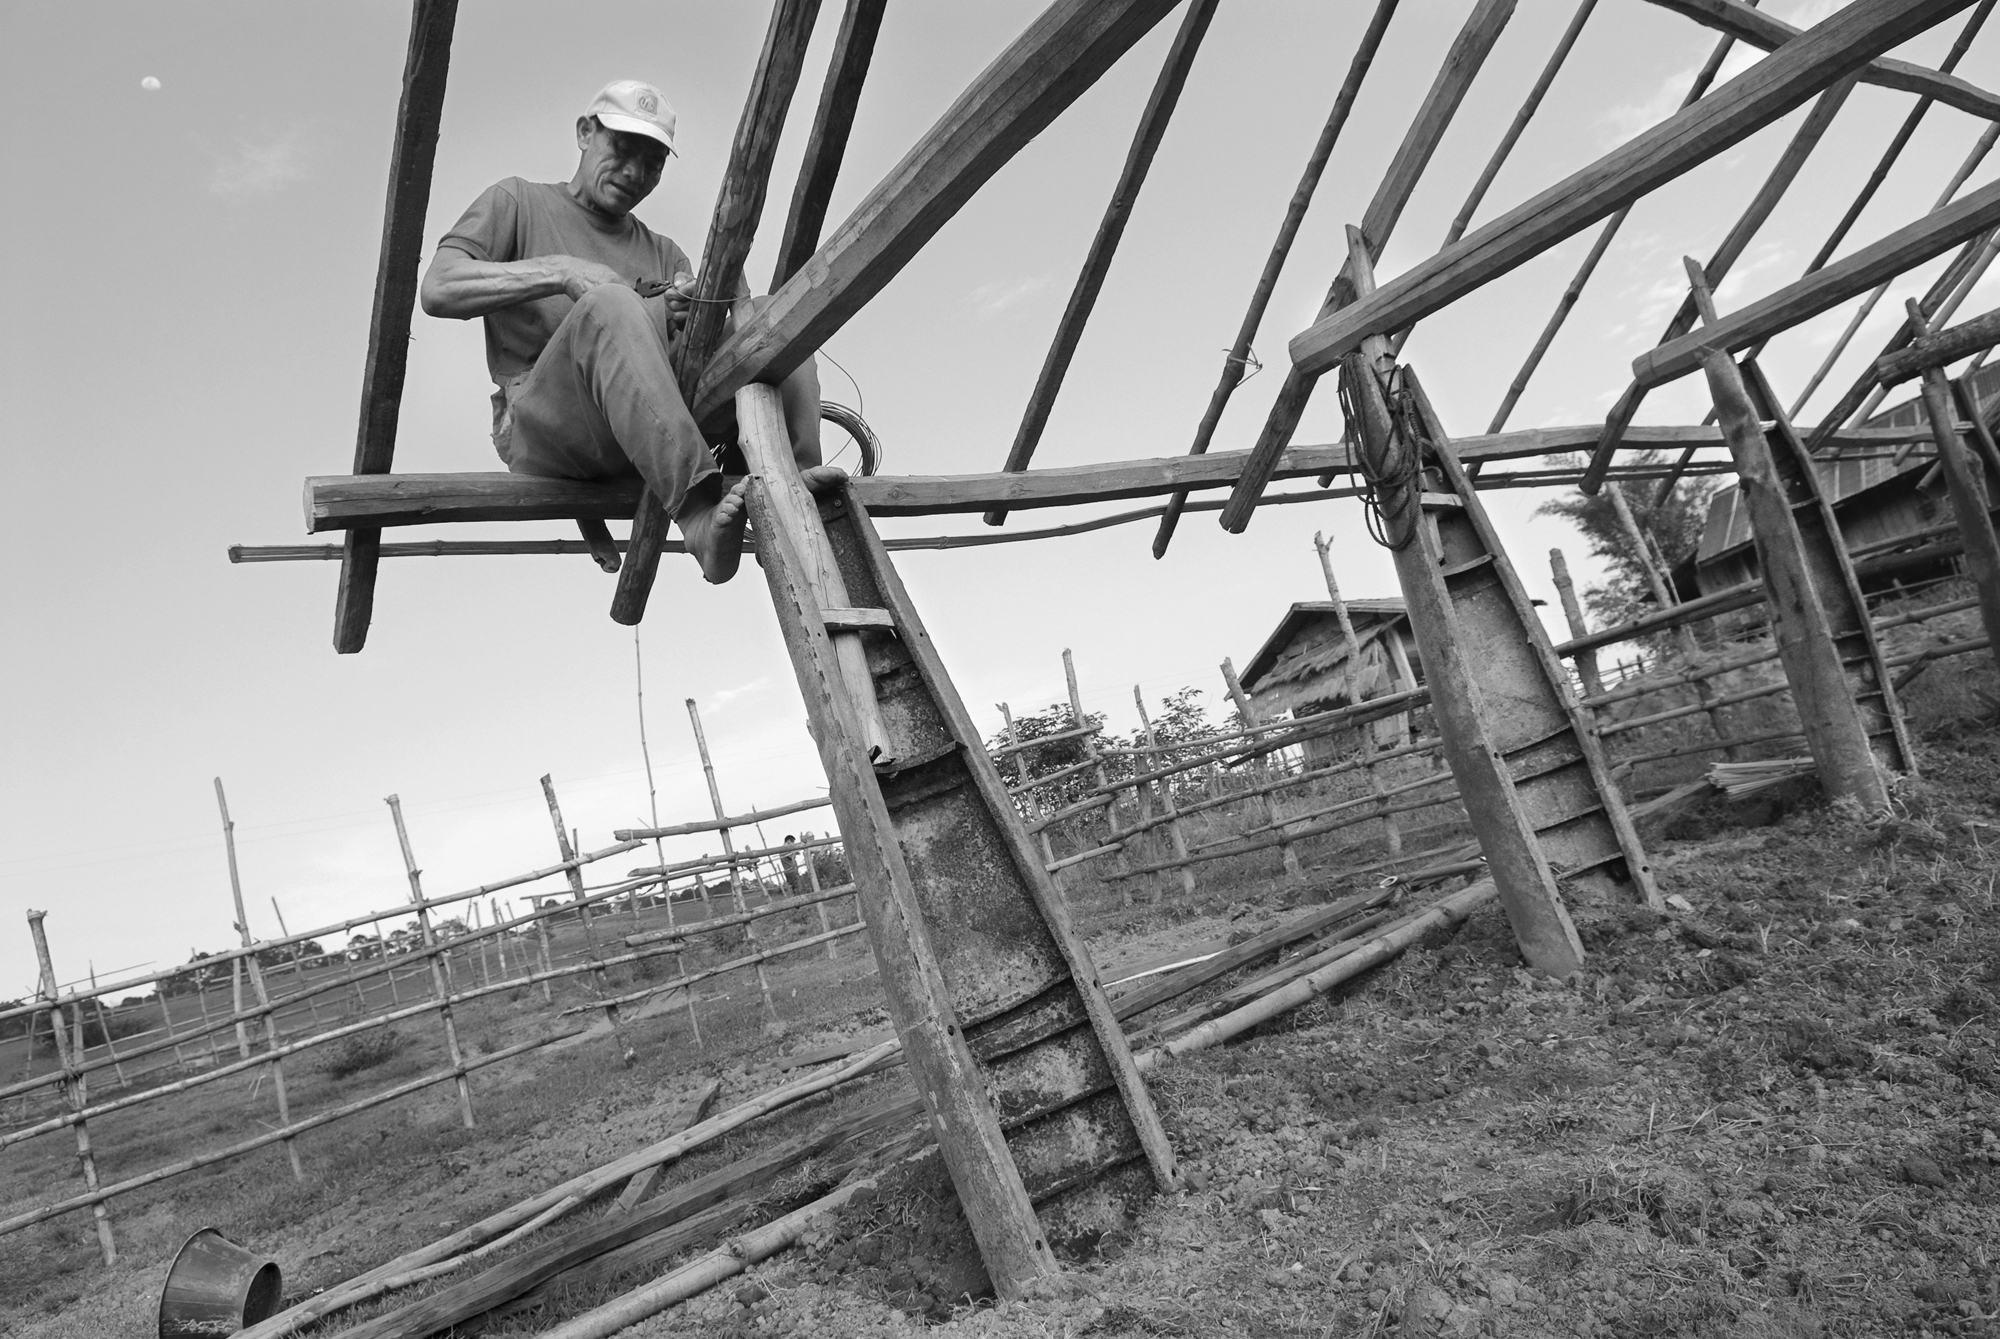 A farmer uses empty cluster bomb casings as pillars for a new animal shelter on his farm in rural Xiengkhouang Province, Laos. The casings, made of well-painted, high-quality steel are valuable for their structural properties as well as their value on the scrap metal market.